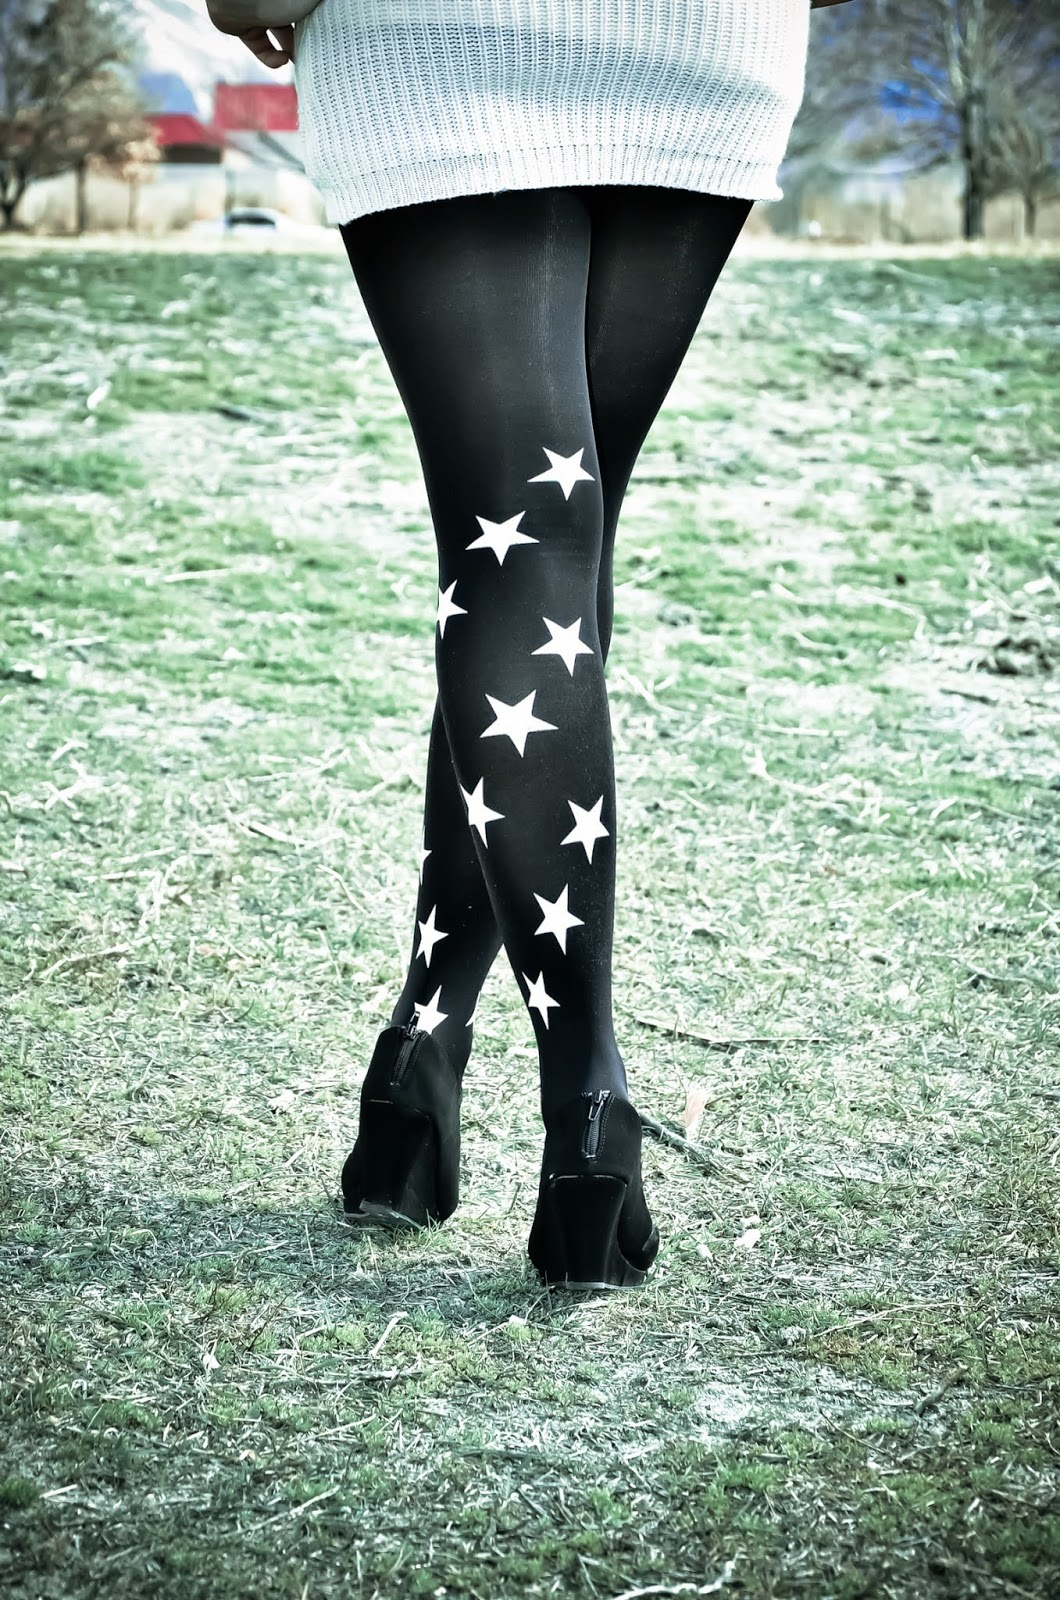 trendylegs tights, trendylegs, trendylegs star tights, star tights, chunky sweater dress, sweater dress outfit for winter, perfect winter outfit, sweater dress for winter, zipper sweater dress, blanket scarf outfit, blanket scarf, plaid scarf, plaid blanket scarf,